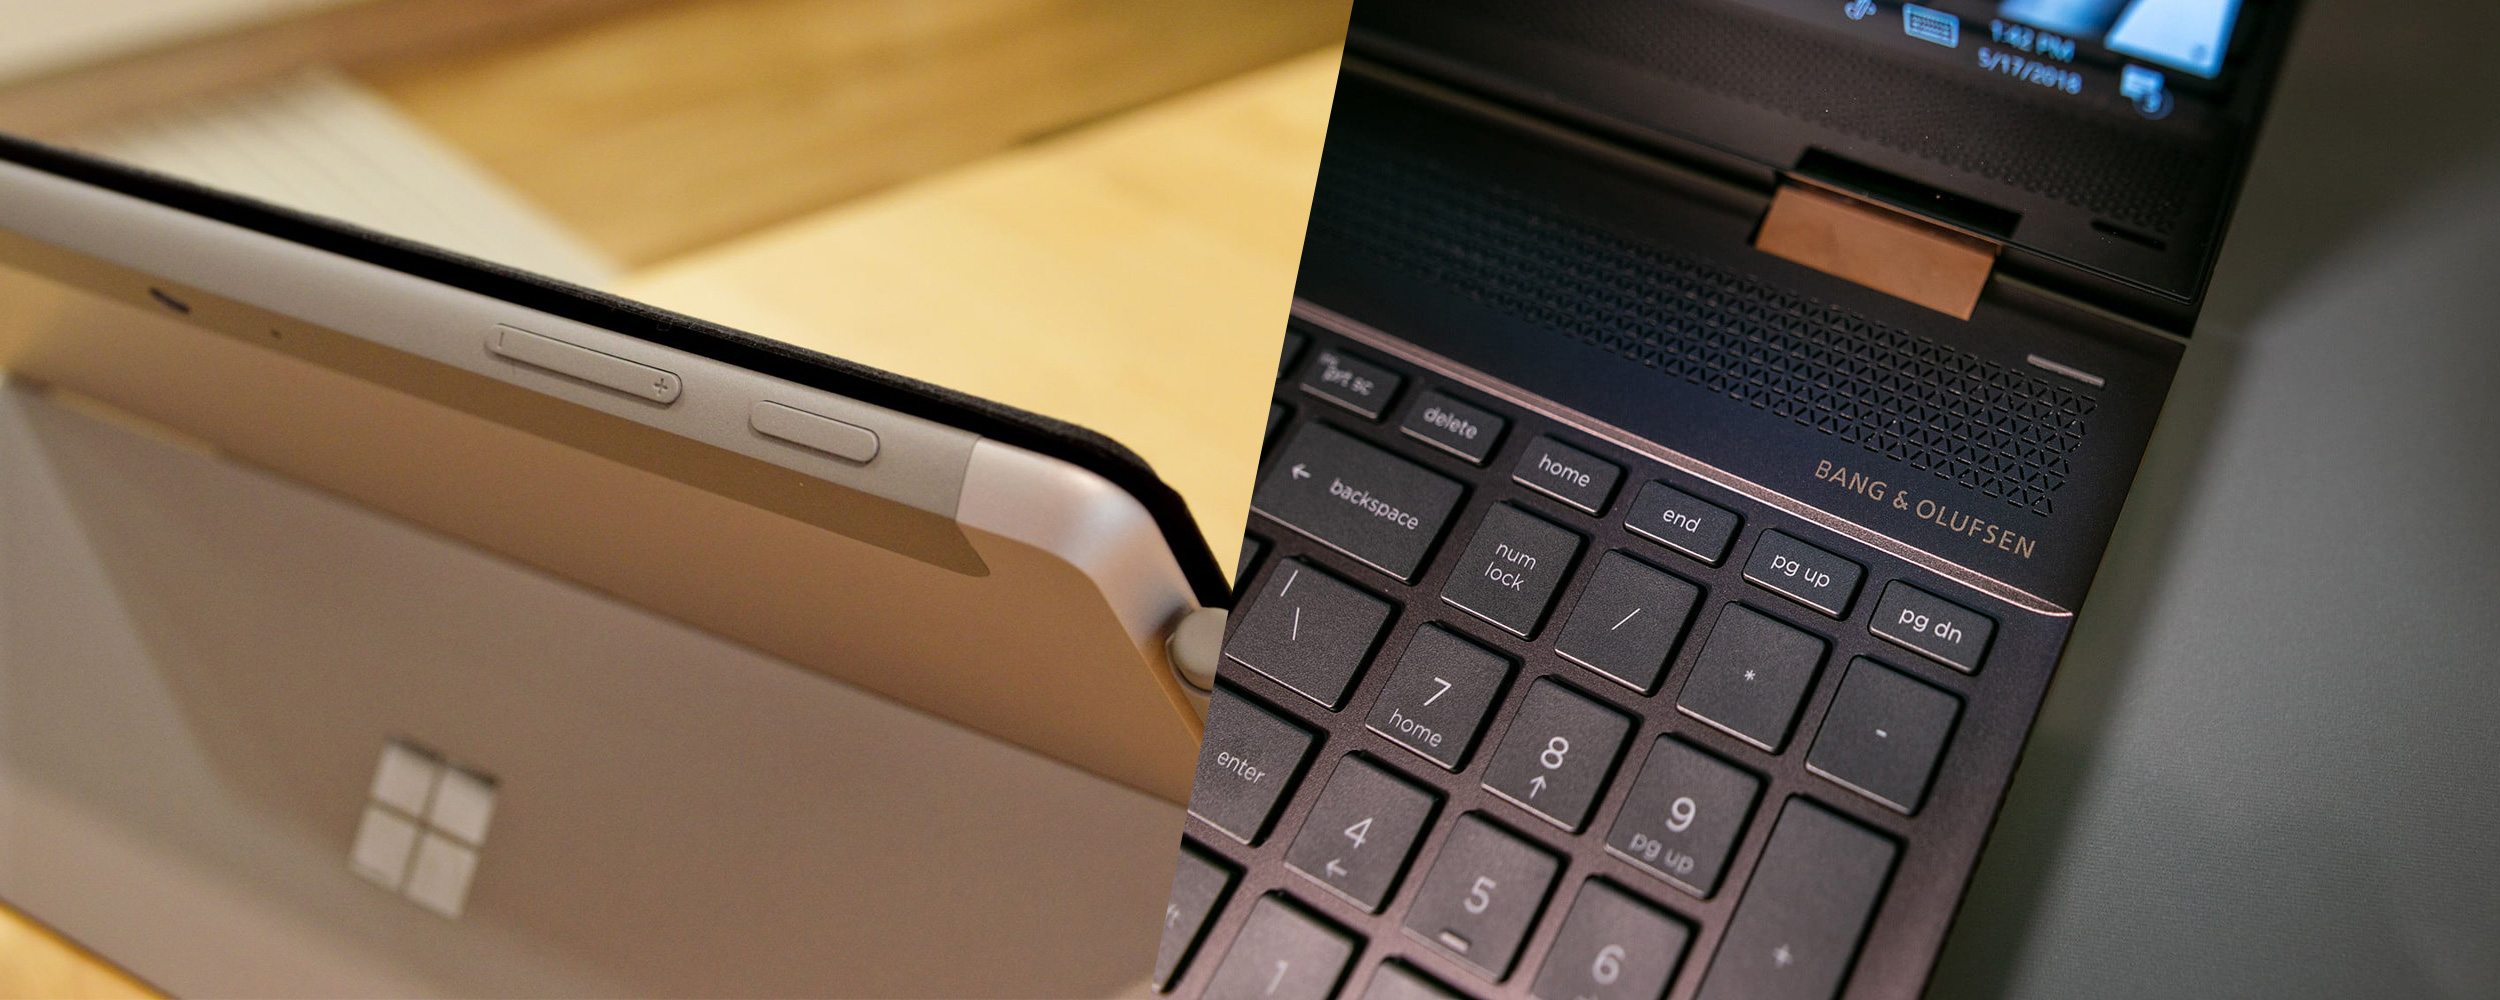 Spectre & Surface Go Reviews incoming!